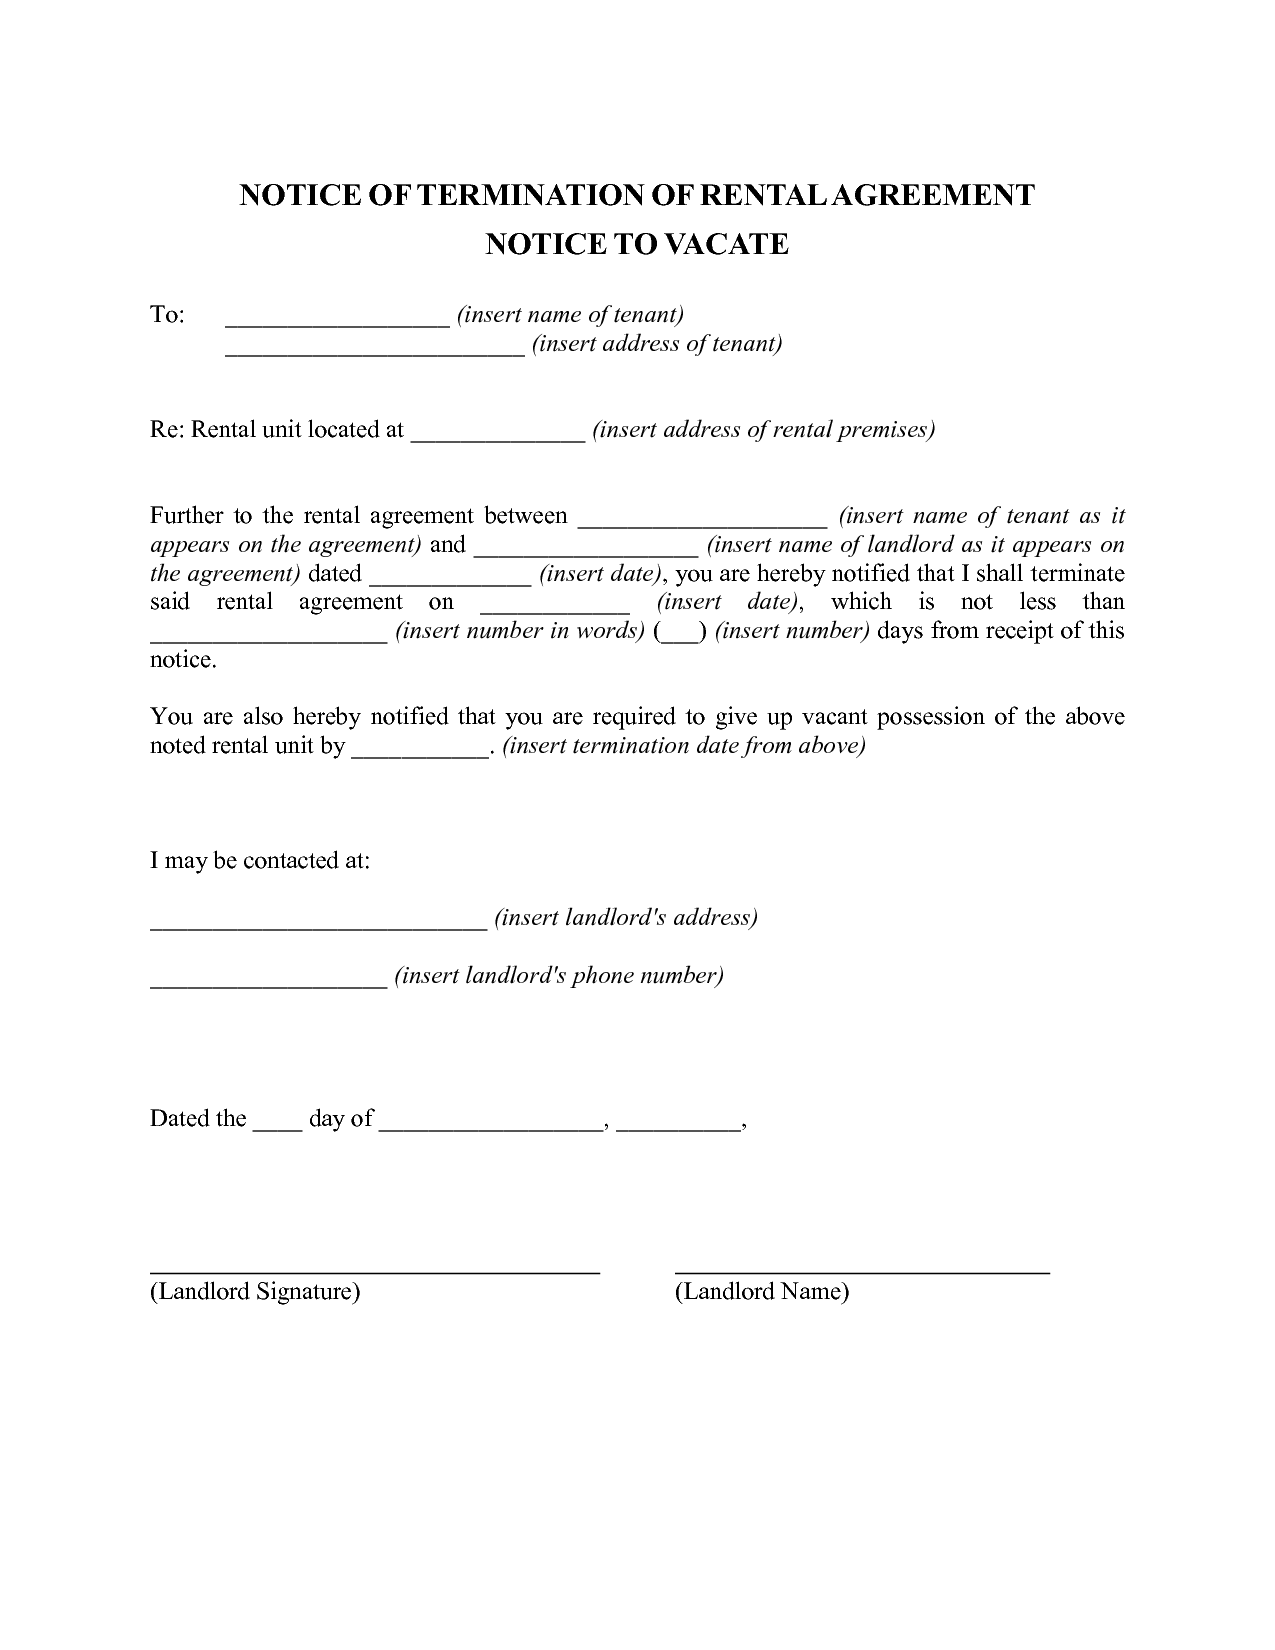 Sample Letter Termination Lease Agreement Tenant Cancellation